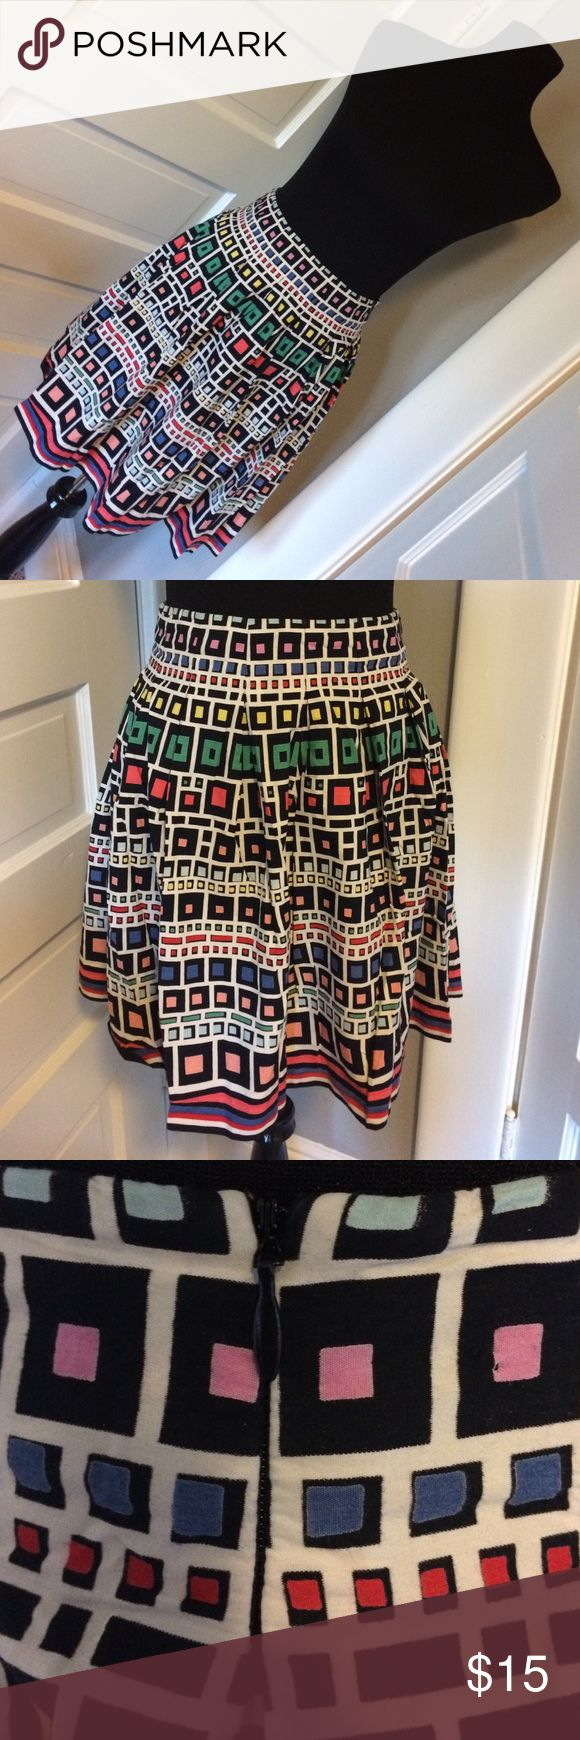 "Fun French Connection Skirt Super fun geometric shape skirt. Gently used. Measures 13"" across waist. French Connection Skirts"